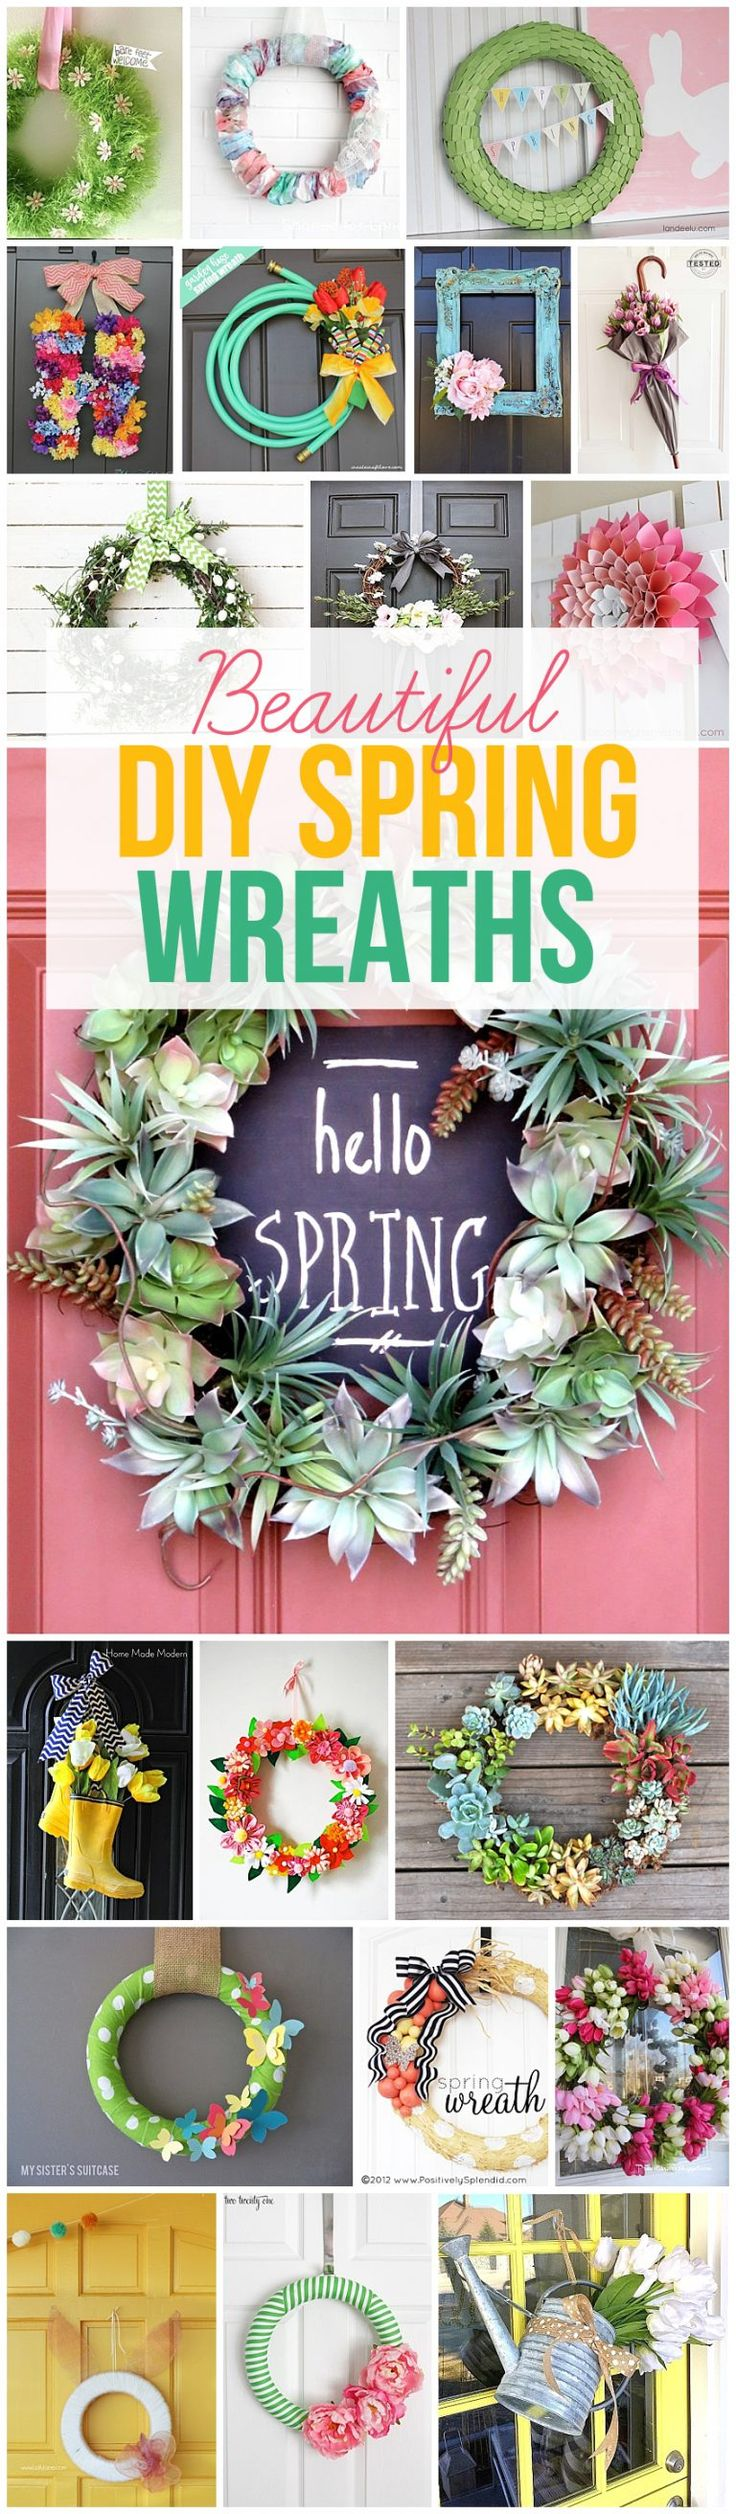 Get your craft on and make some one of these beautiful DIY spring wreaths this y...